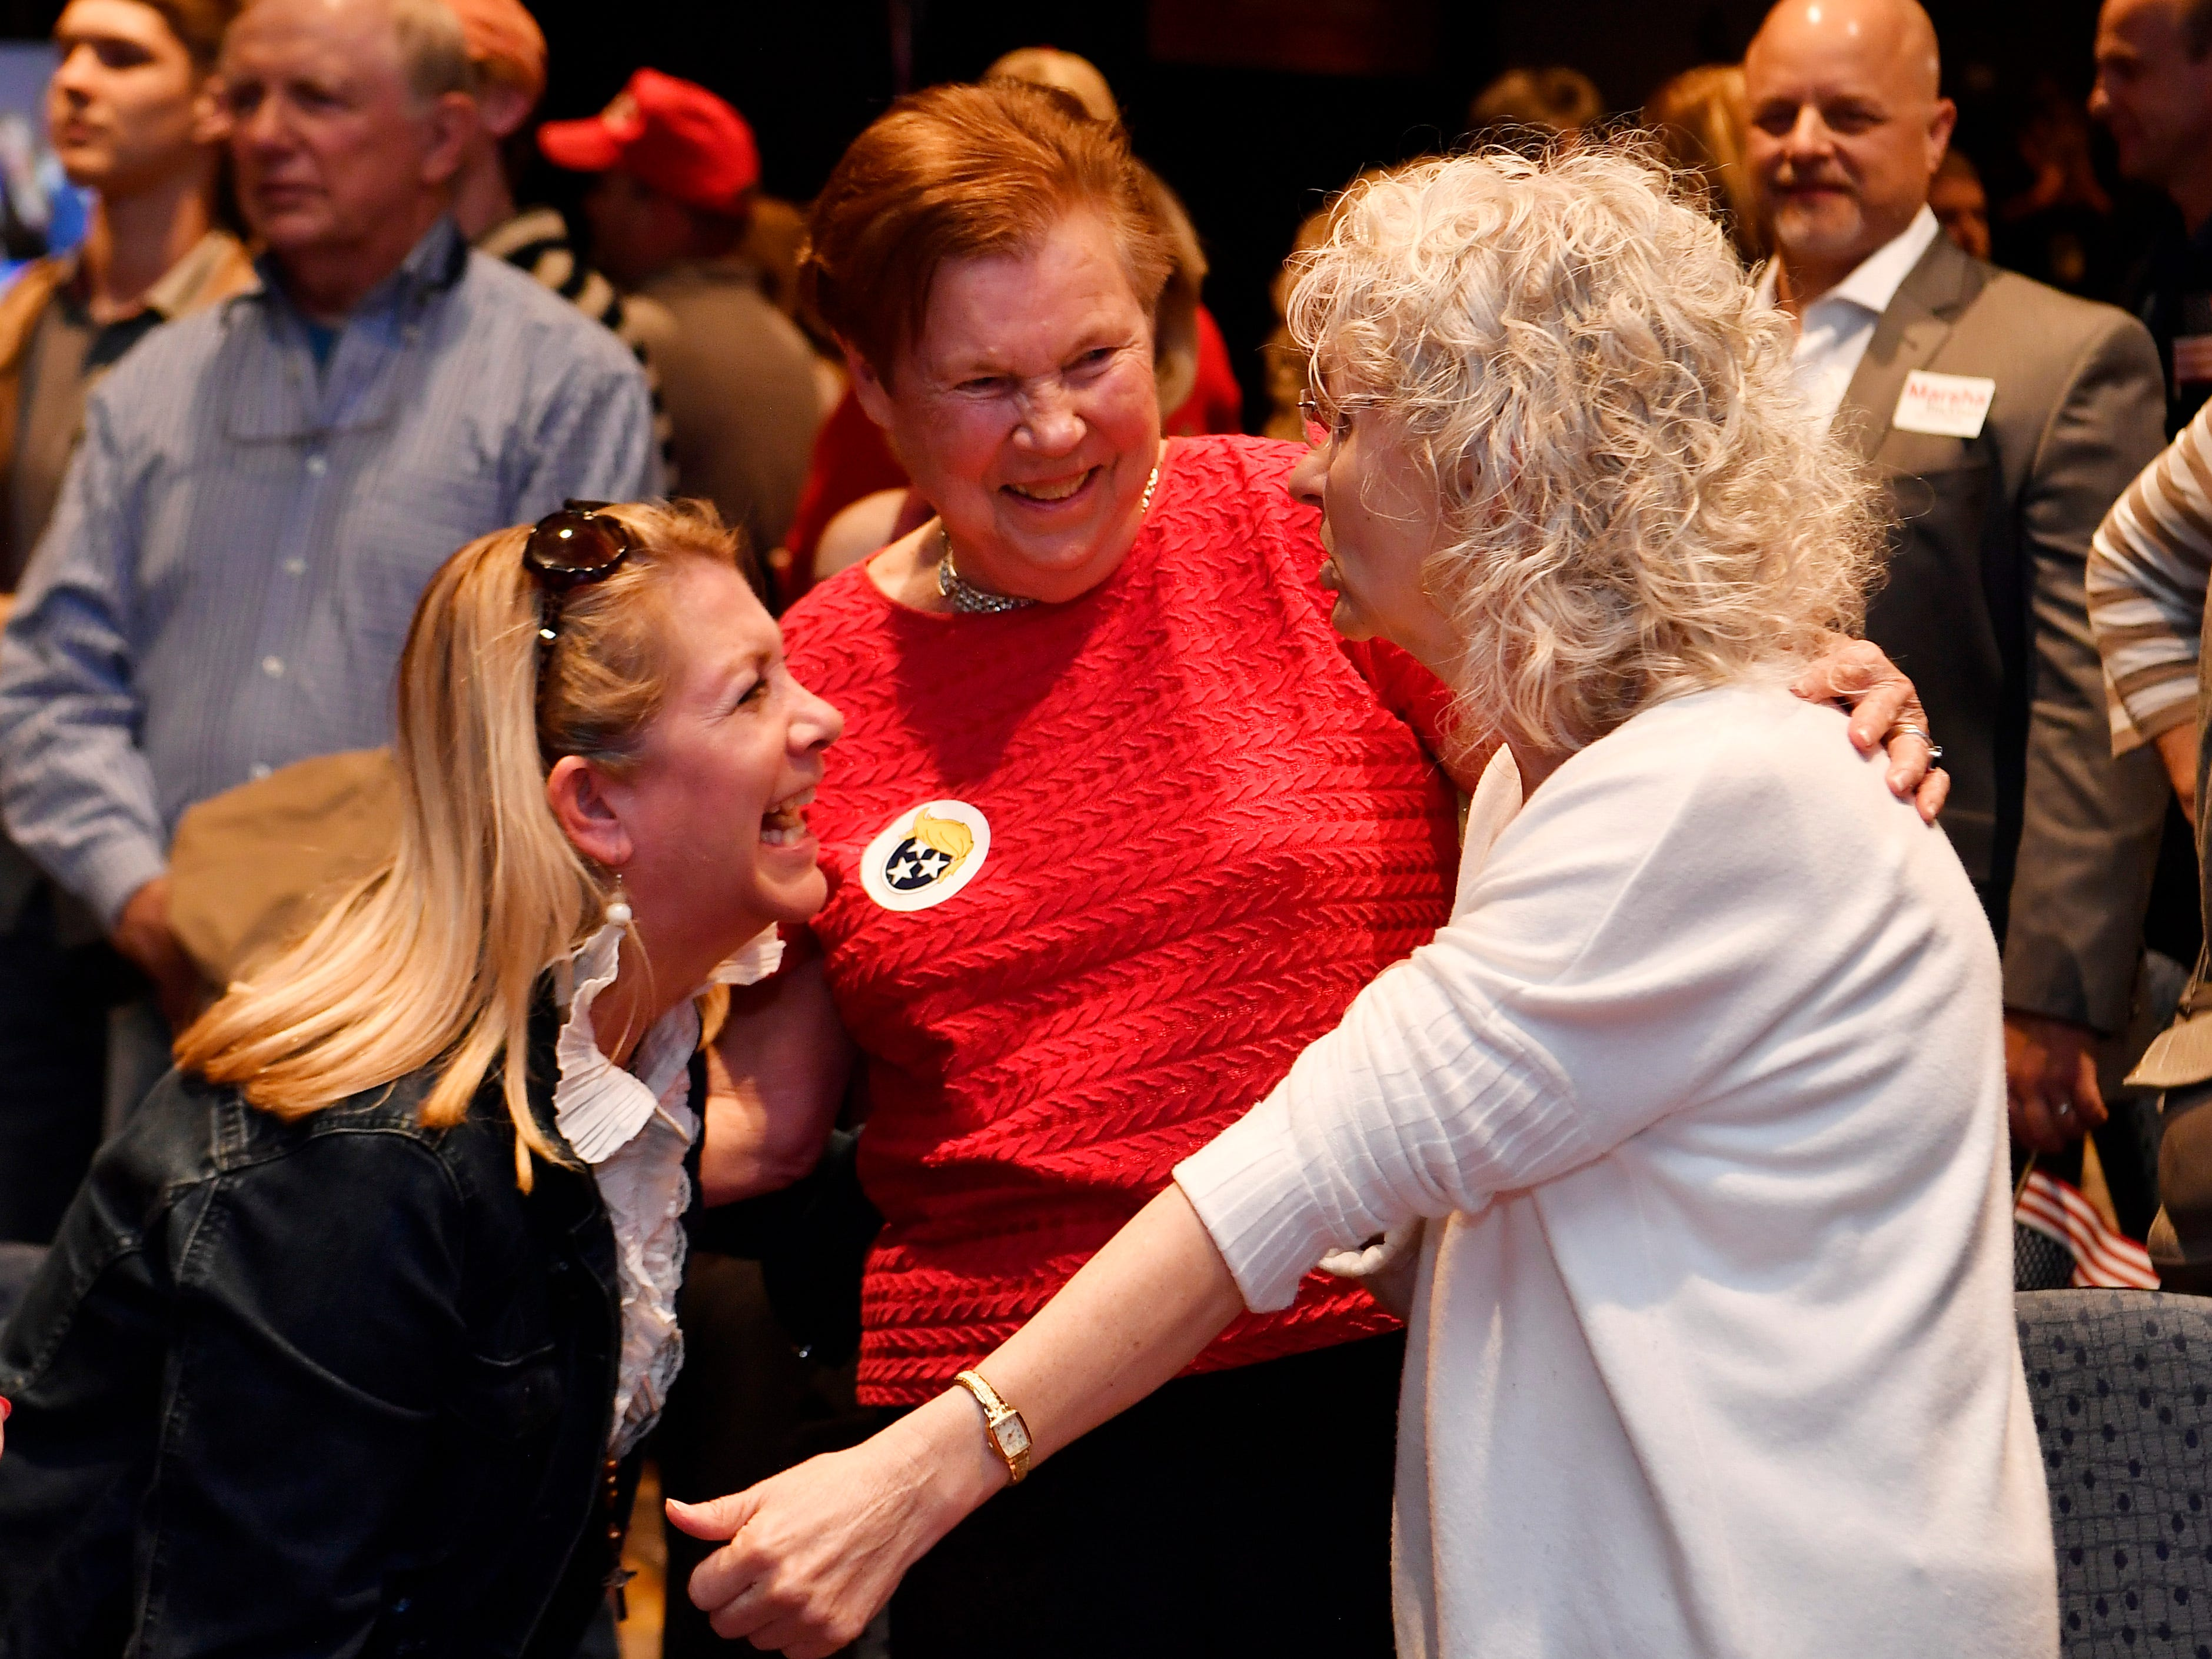 From left, Jamie Hill, Virginia Mitchell and Betsy Carroll celebrate during the election night watch party for Republican U.S. Senate candidate Marsha Blackburn  Tuesday, Nov. 6, 2018, in Franklin, Tenn.